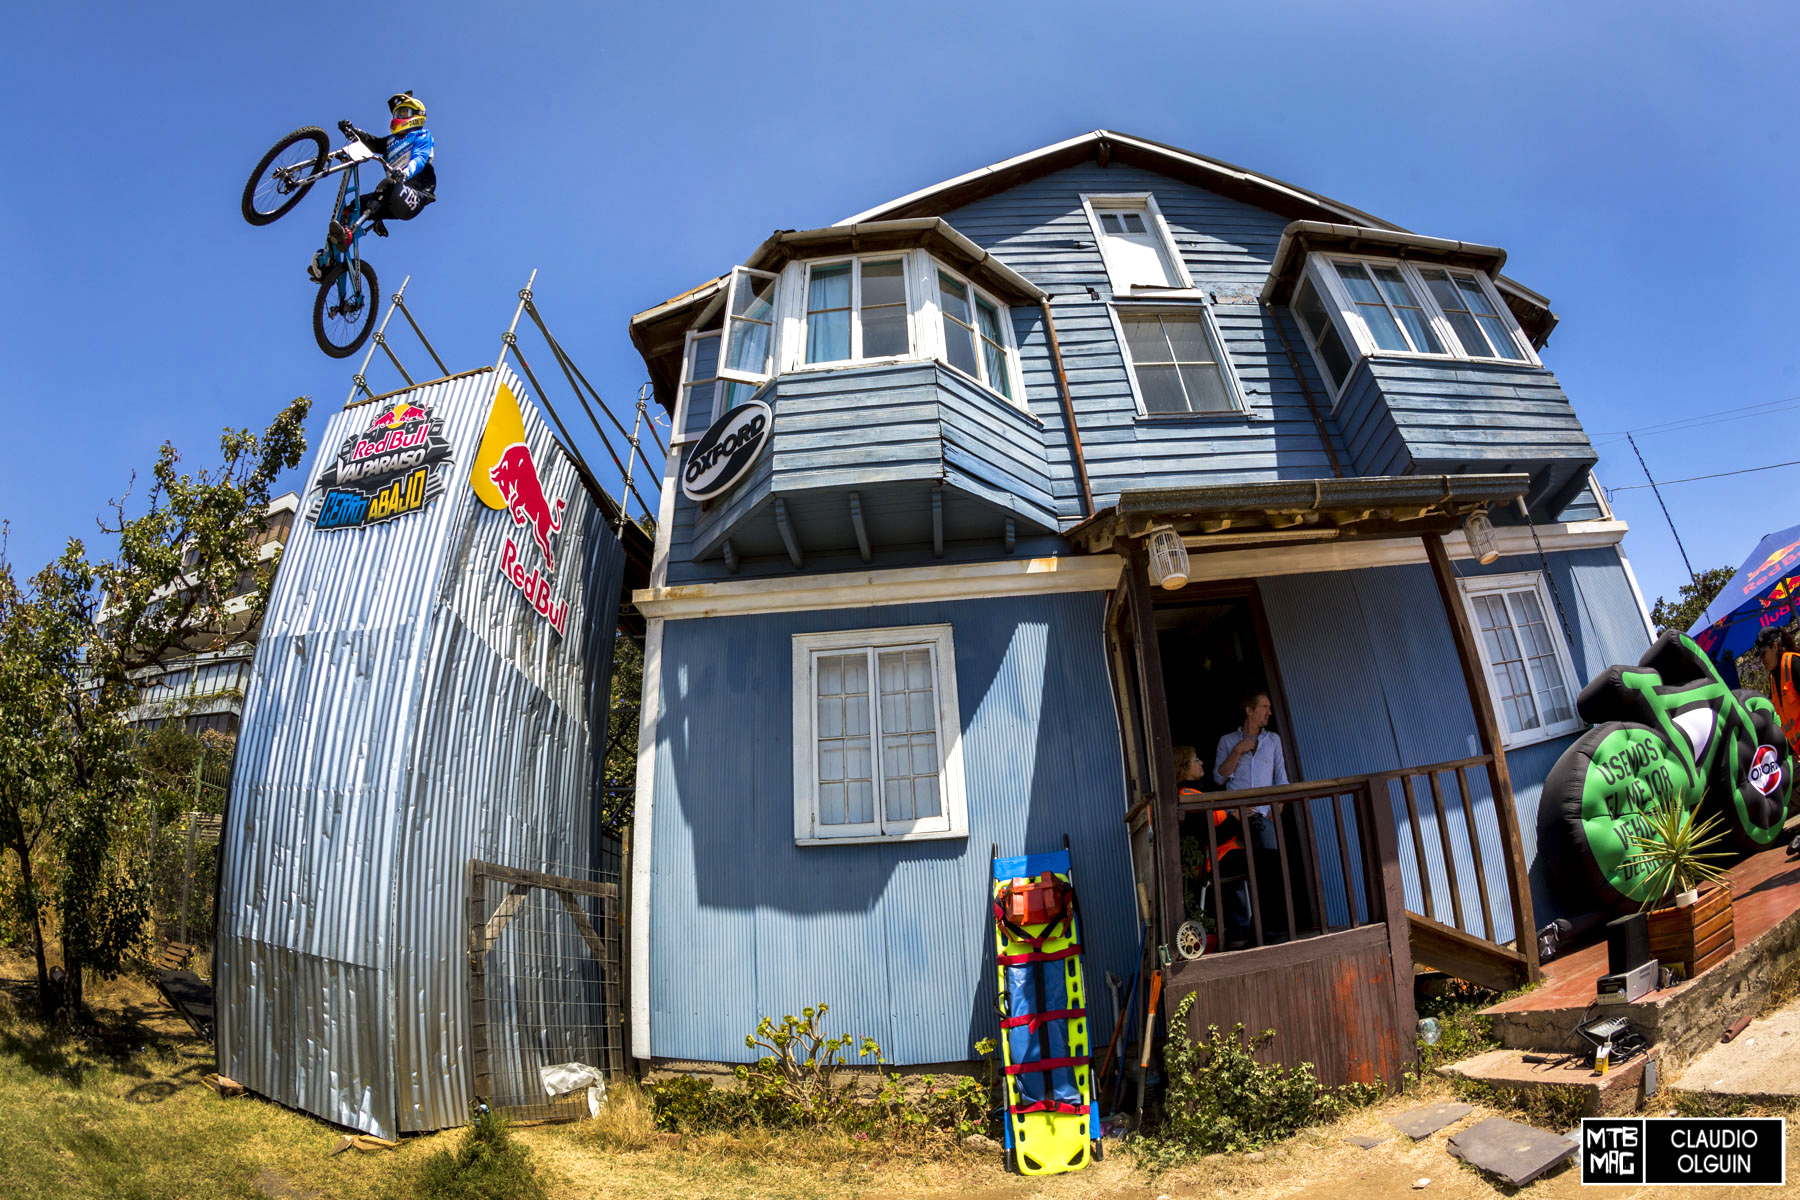 Adolfo Almarza performs during the Red Bull Valparaiso Cerro Abajo, in Valparaiso, Chile on February 21st, 2016